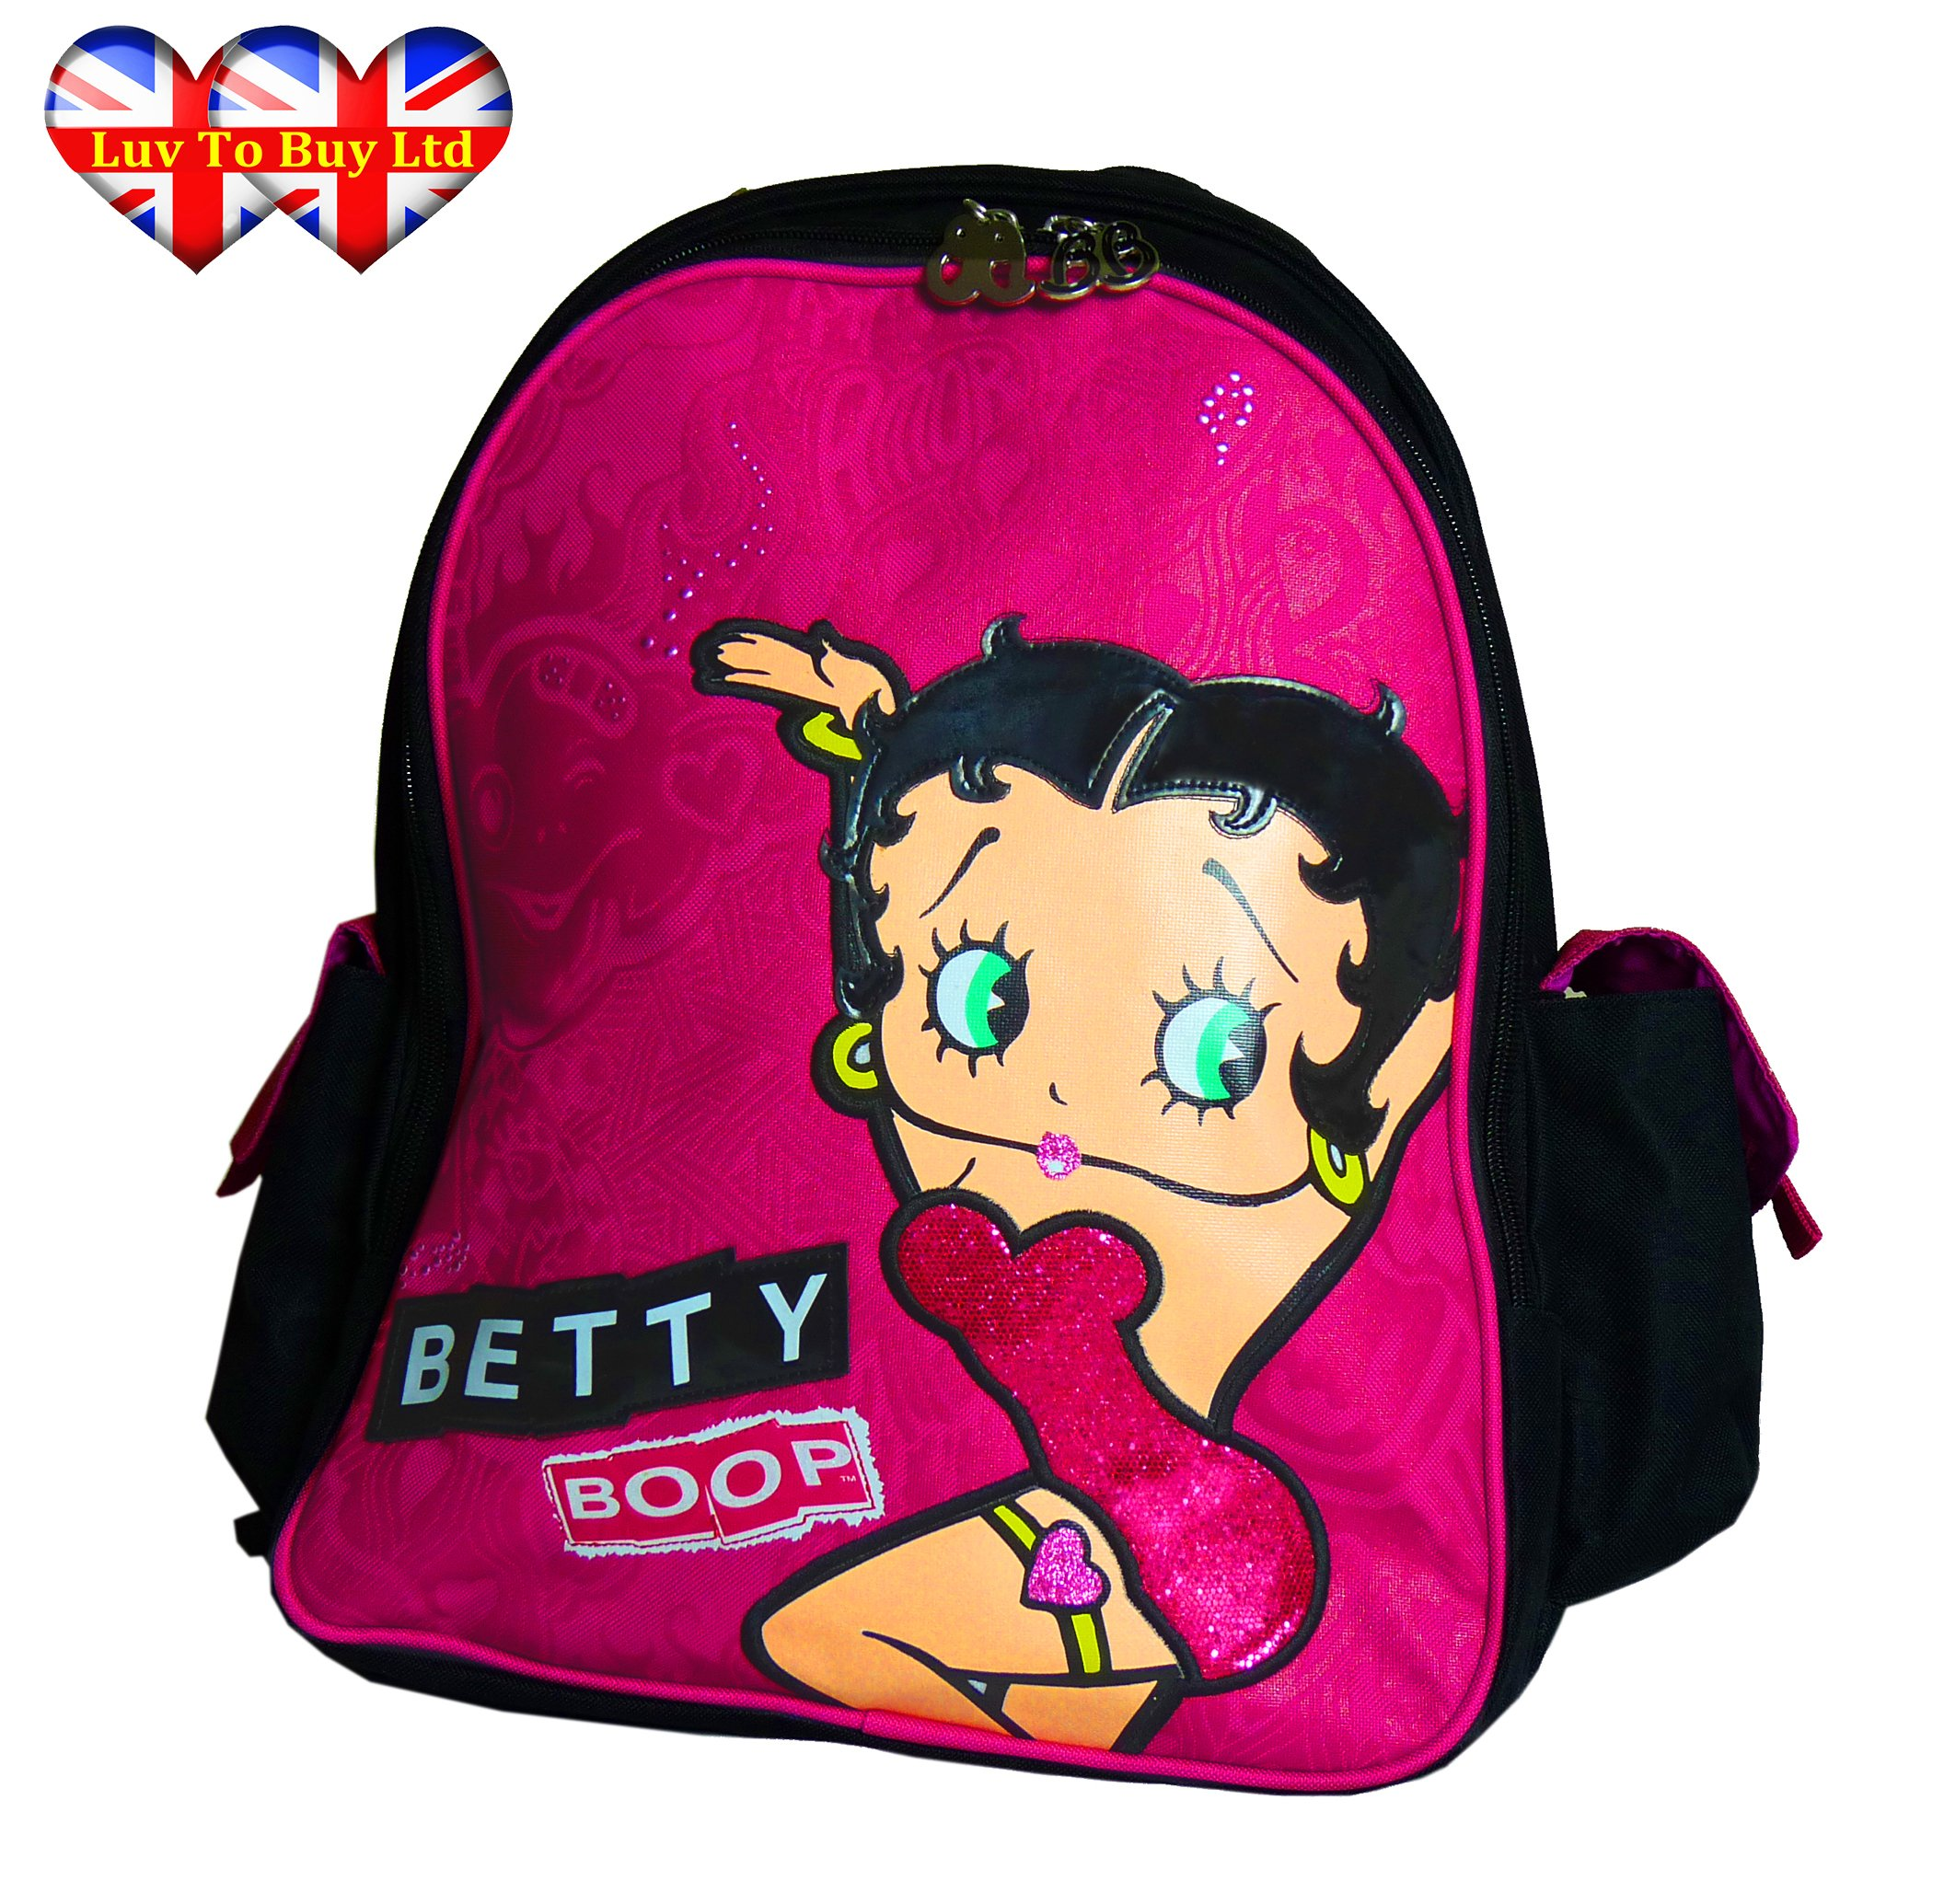 Betty Boop School Bag,Brand,Official Licensed Backpack (Clearance- Stock Reduced RRP:$50)